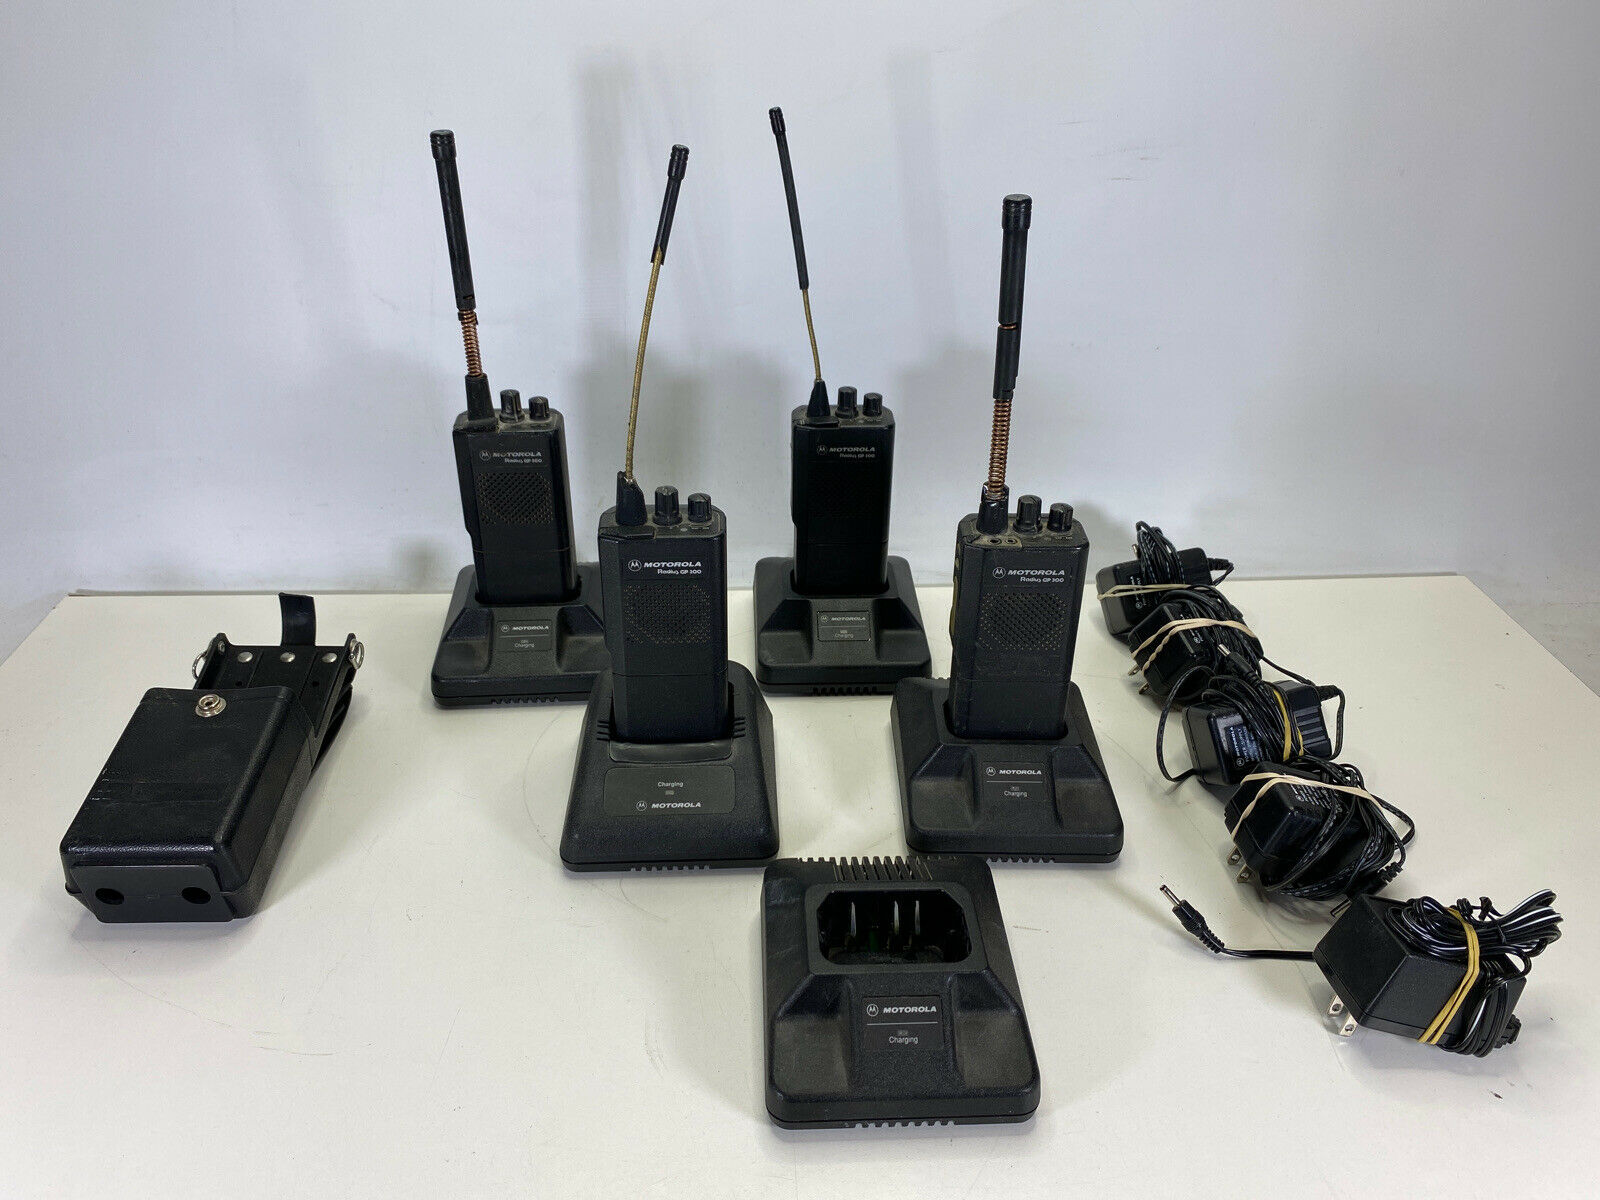 LOT OF 4 Motorola Radius GP 300 GP300 UHF Radios with 5 Chargers and Holster. Buy it now for 99.99